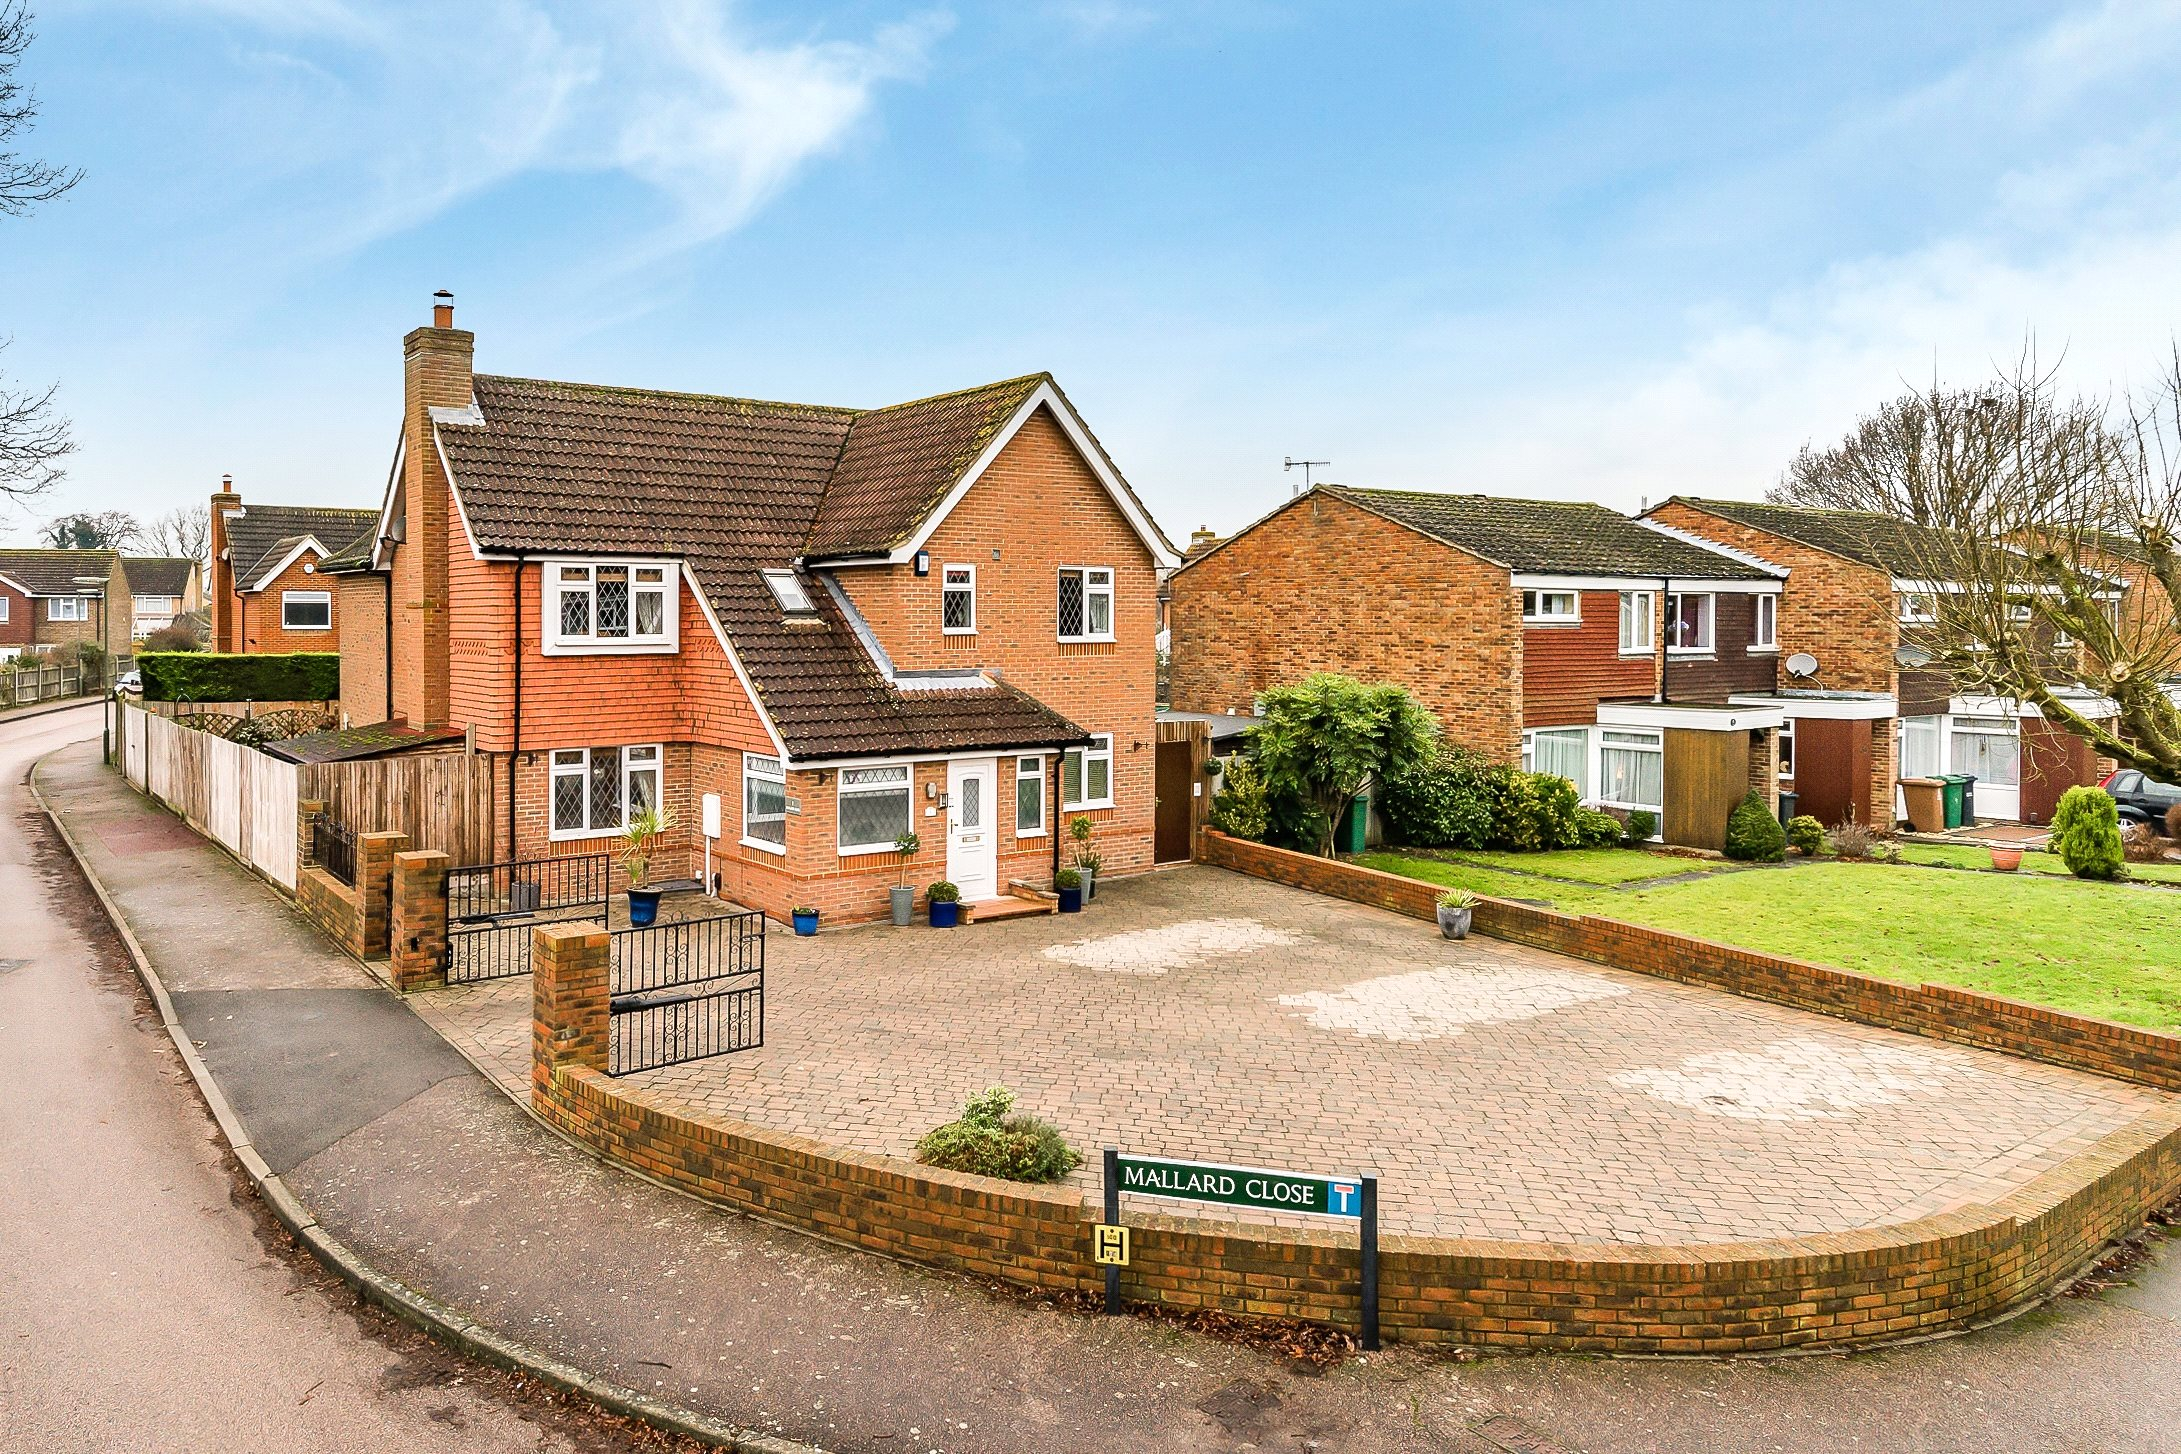 4 Bedrooms Detached House for sale in Mallard Close, Horley, Surrey, RH6